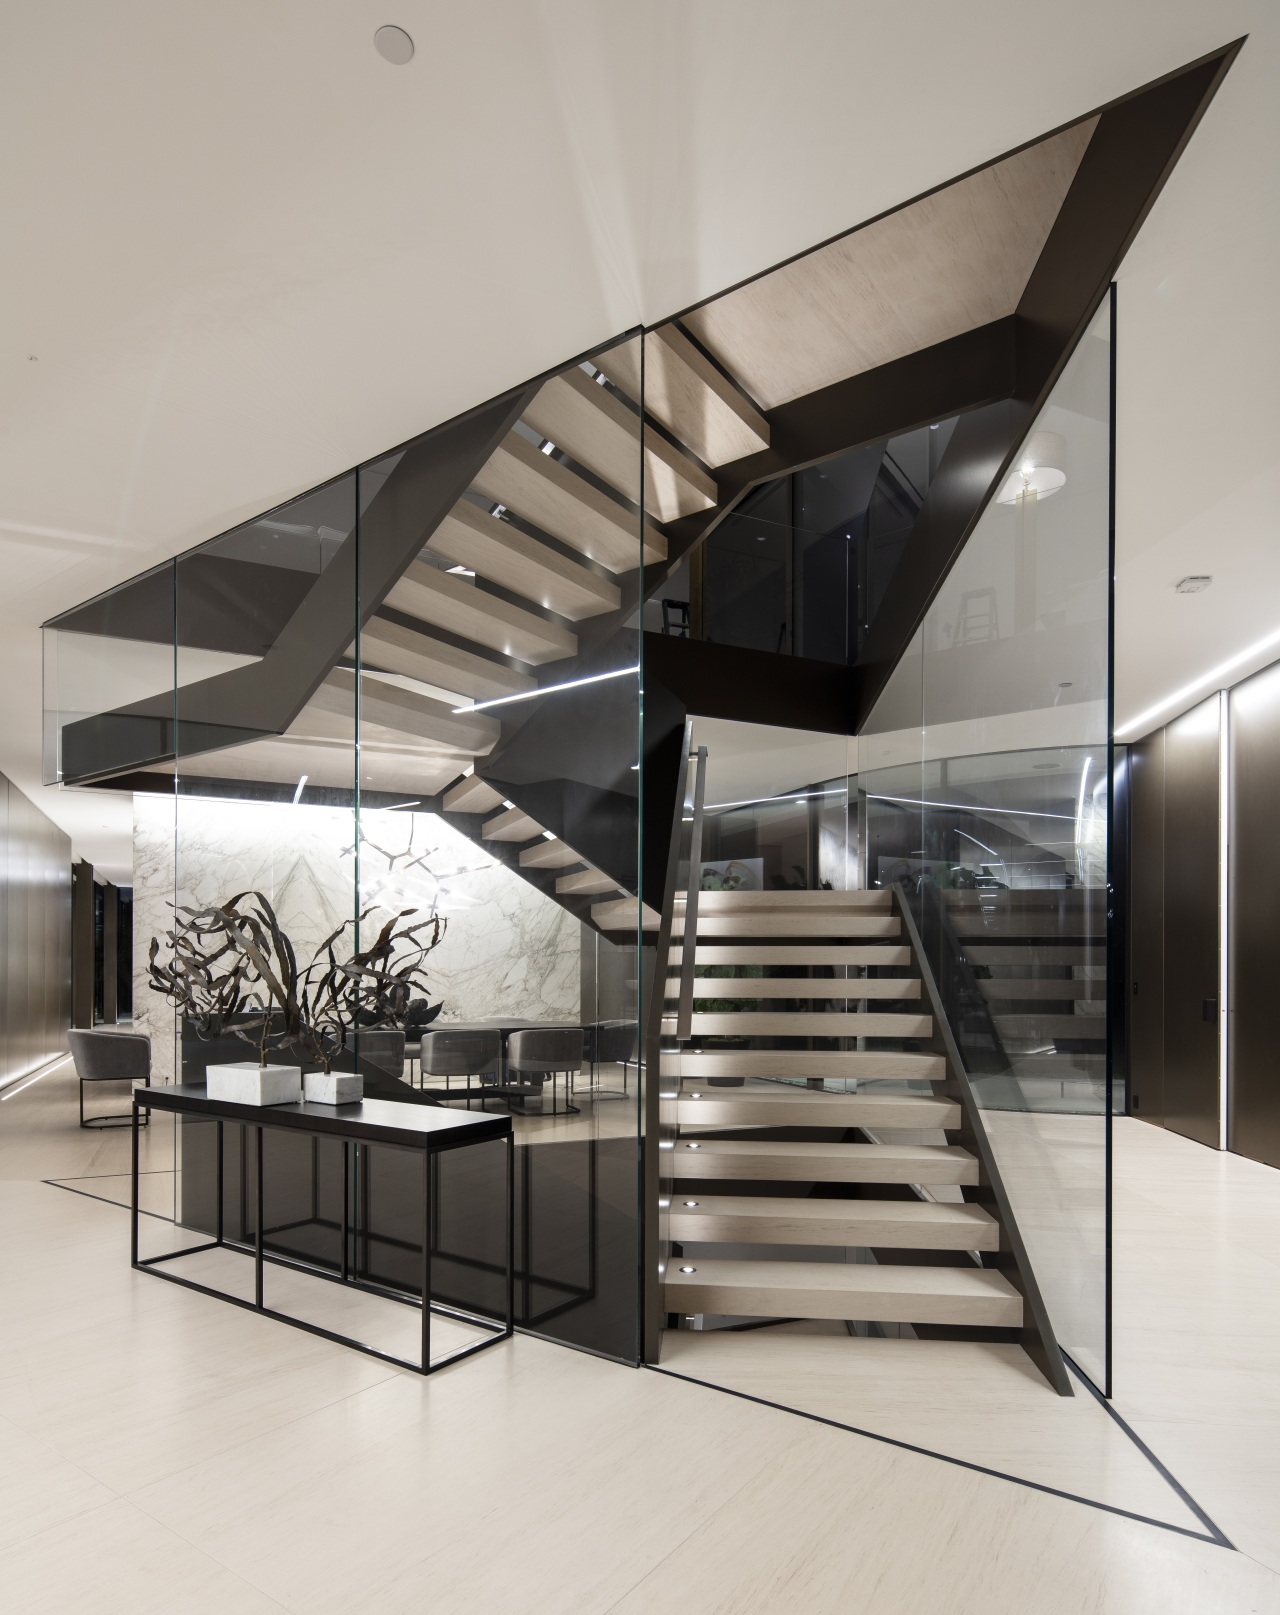 ​​​​​​​Visitors encounter a dynamic glass and steel staircase architecture, black-and-white, building, ceiling, daylighting, design, floor, limestone floor,  stair, staricase, glass, handrail, house, interior design, line, lobby, material property, metal, real estate, room, stairs, gray